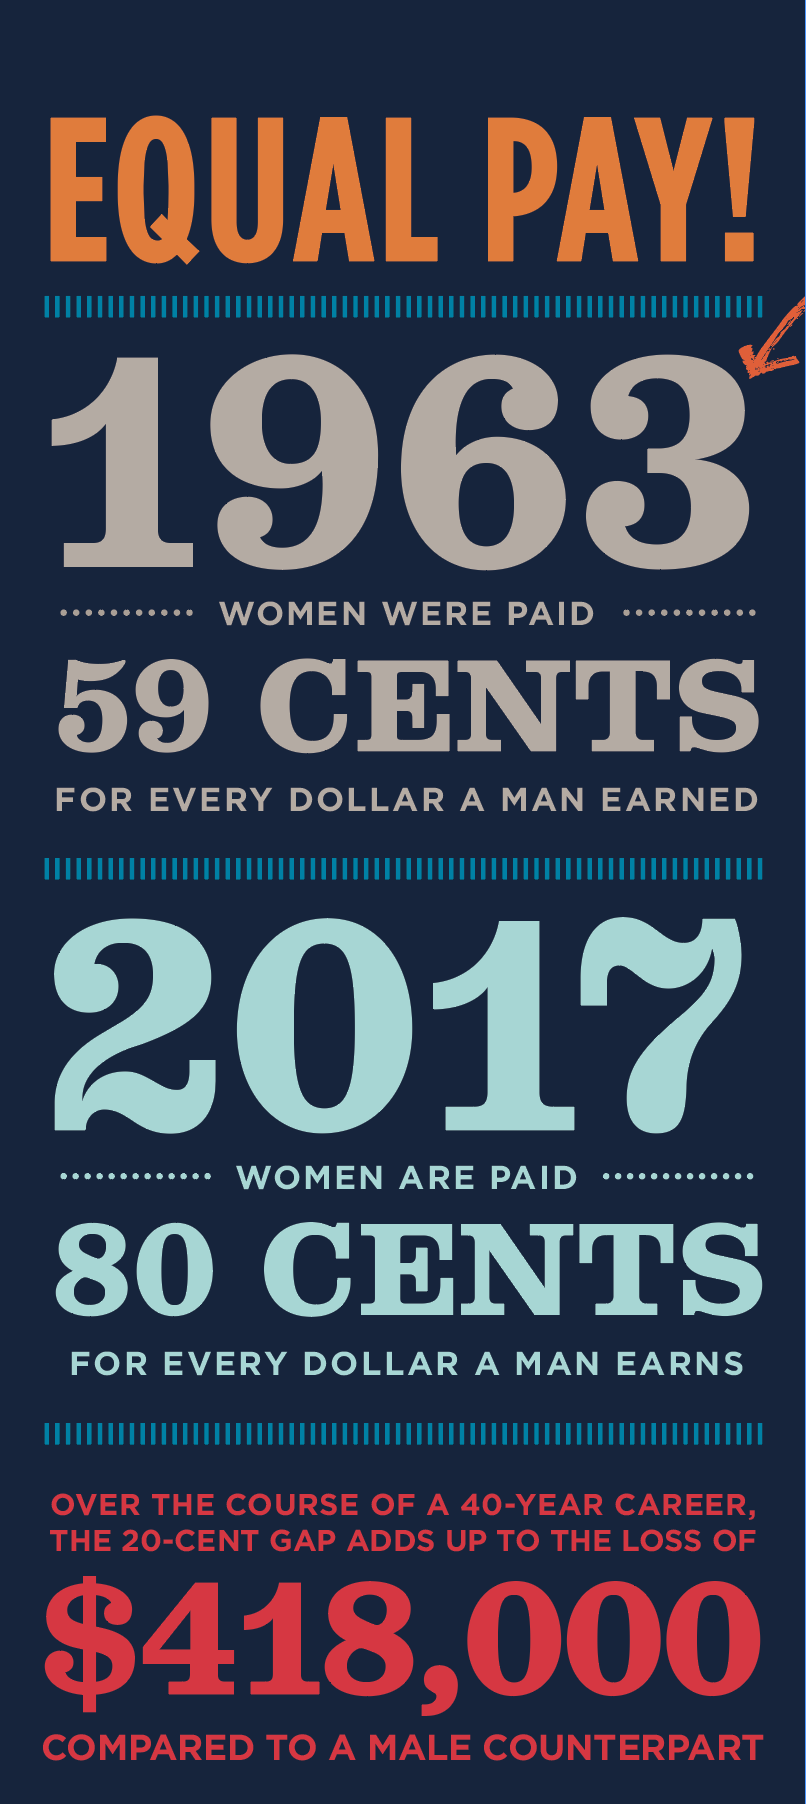 Equal Pay, 1963 Women were paid 59 cents for every dollar a man earned; 2017 women are paid 80 cents for every dollar a man earns; over the course of a 40-year career, the 20-cent gap adds up to the loss of $418,000 compared to a male counterpart.